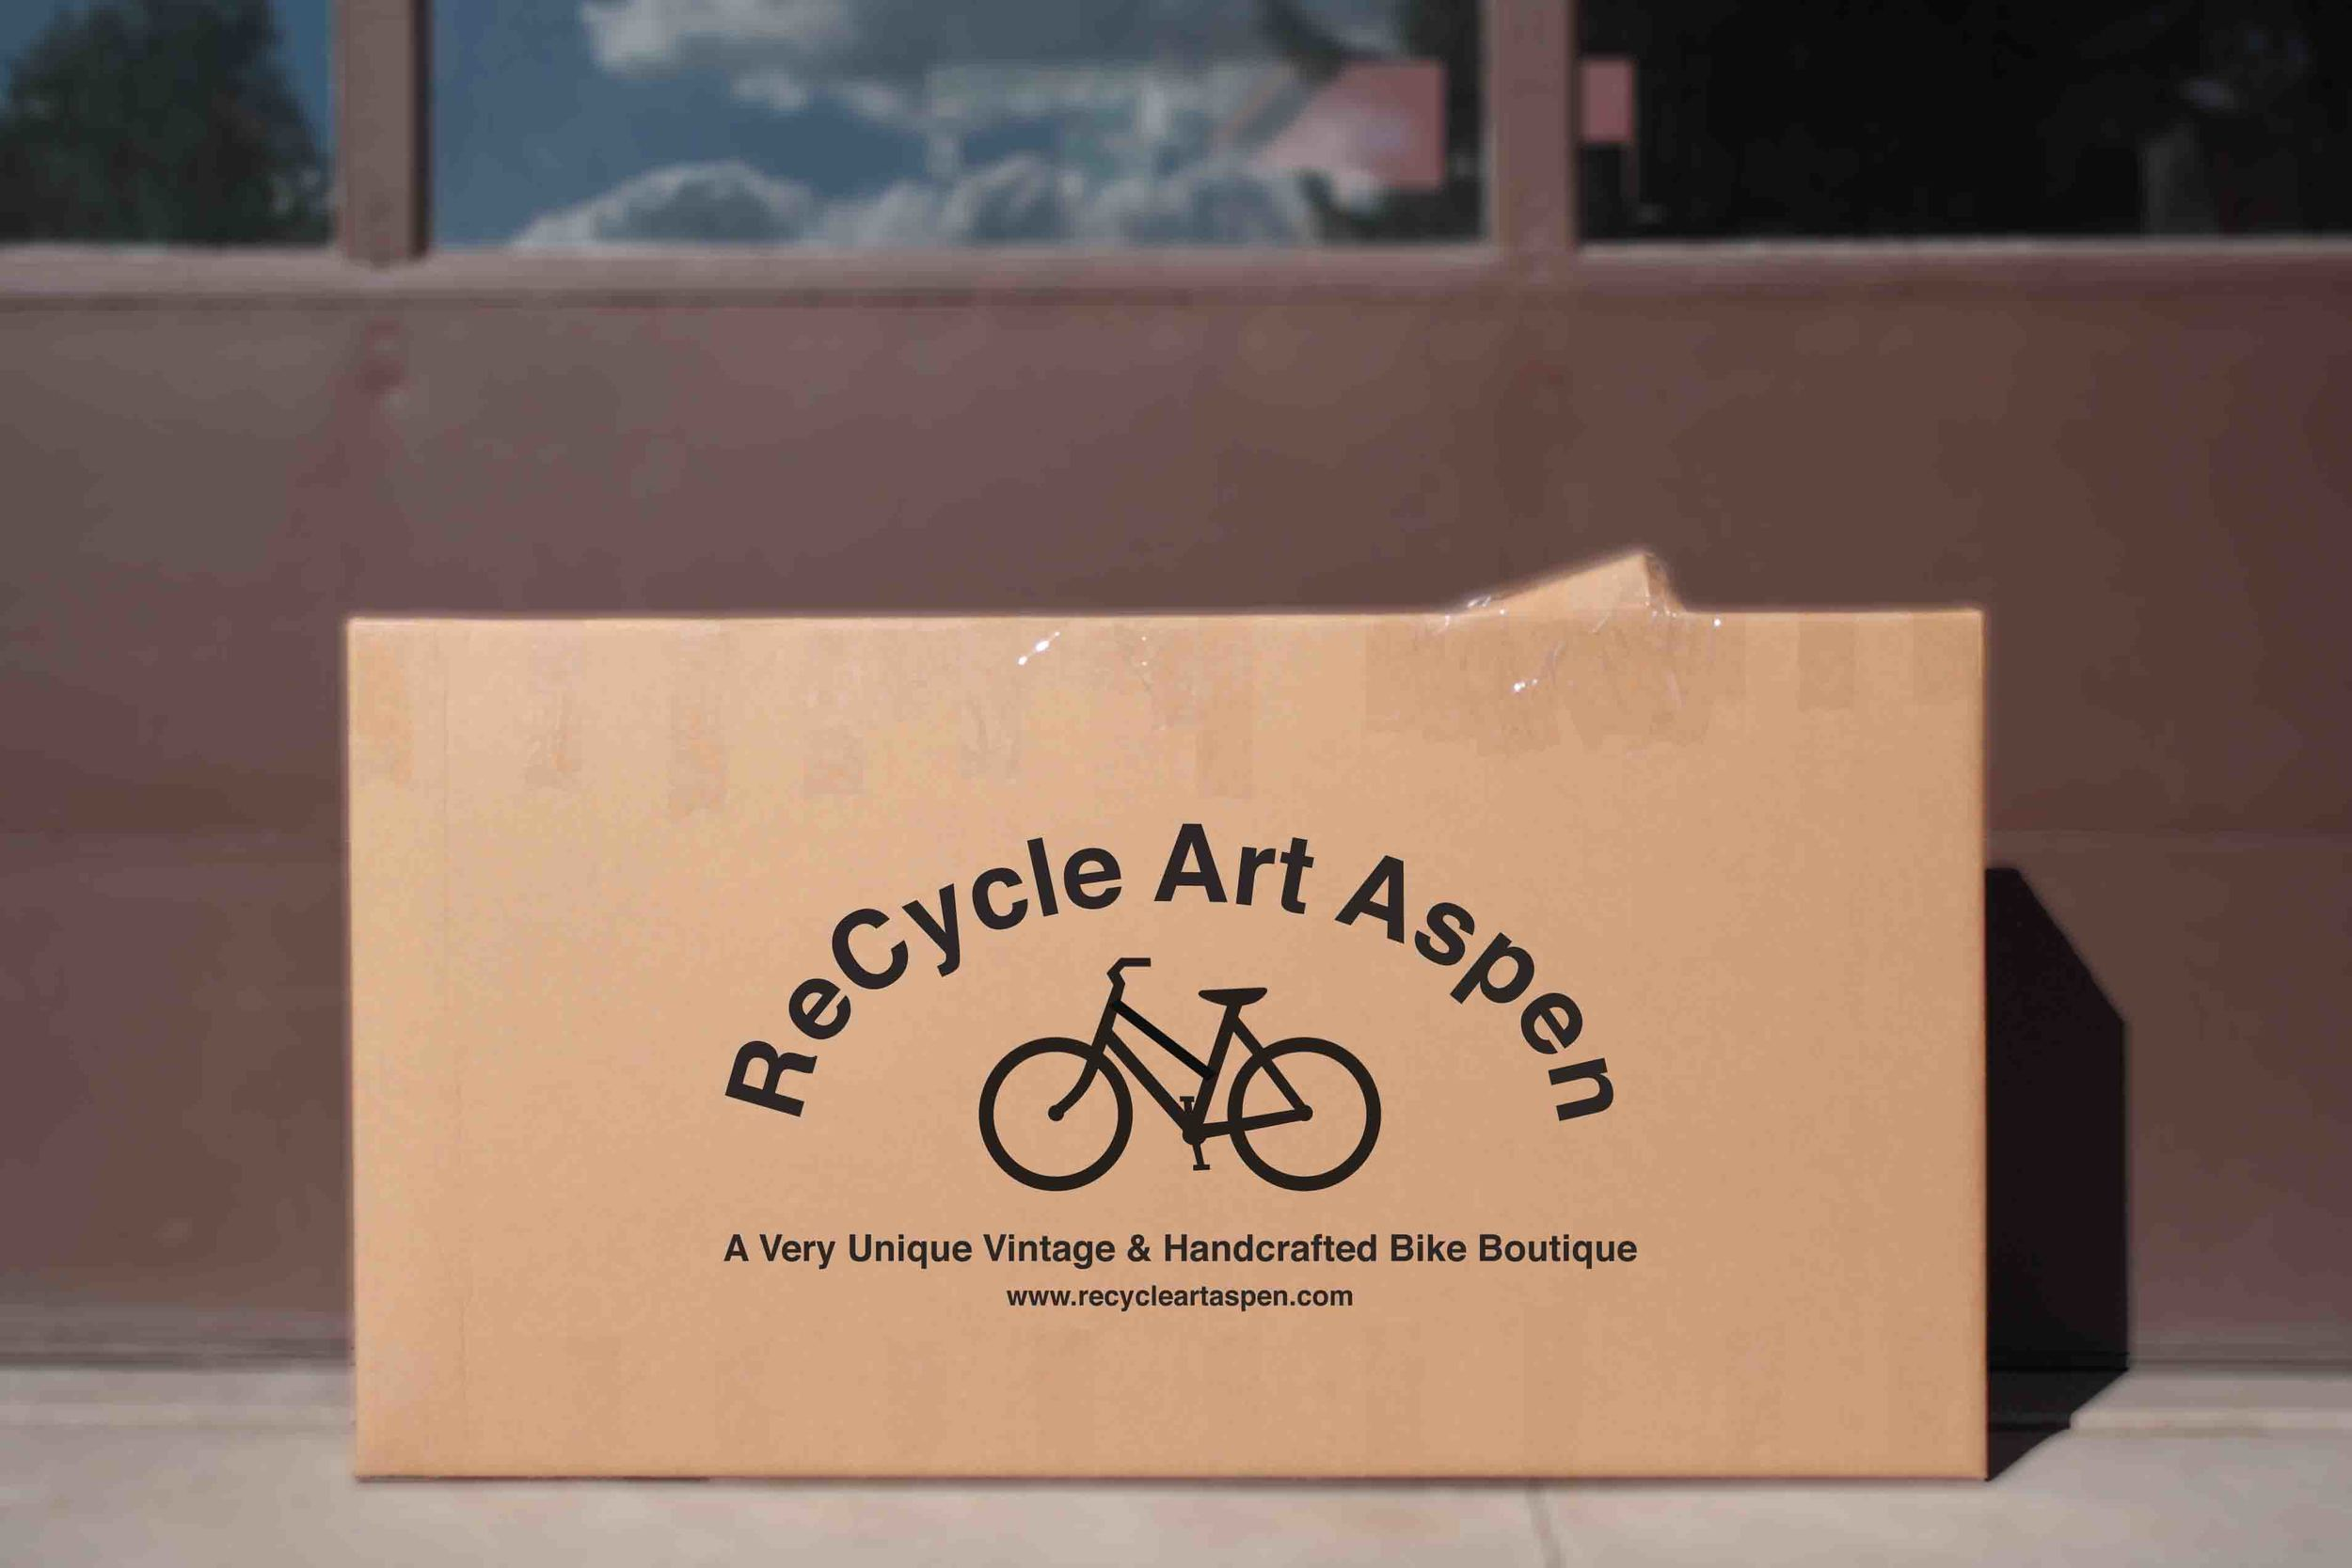 Congratulations! You are the proud new owner of a ReCycle bicycle. You are a few minutes away from your maiden voyage with your vintage bicycle, but before you can ride you'll need to follow this handy guide to reassembling your bike.